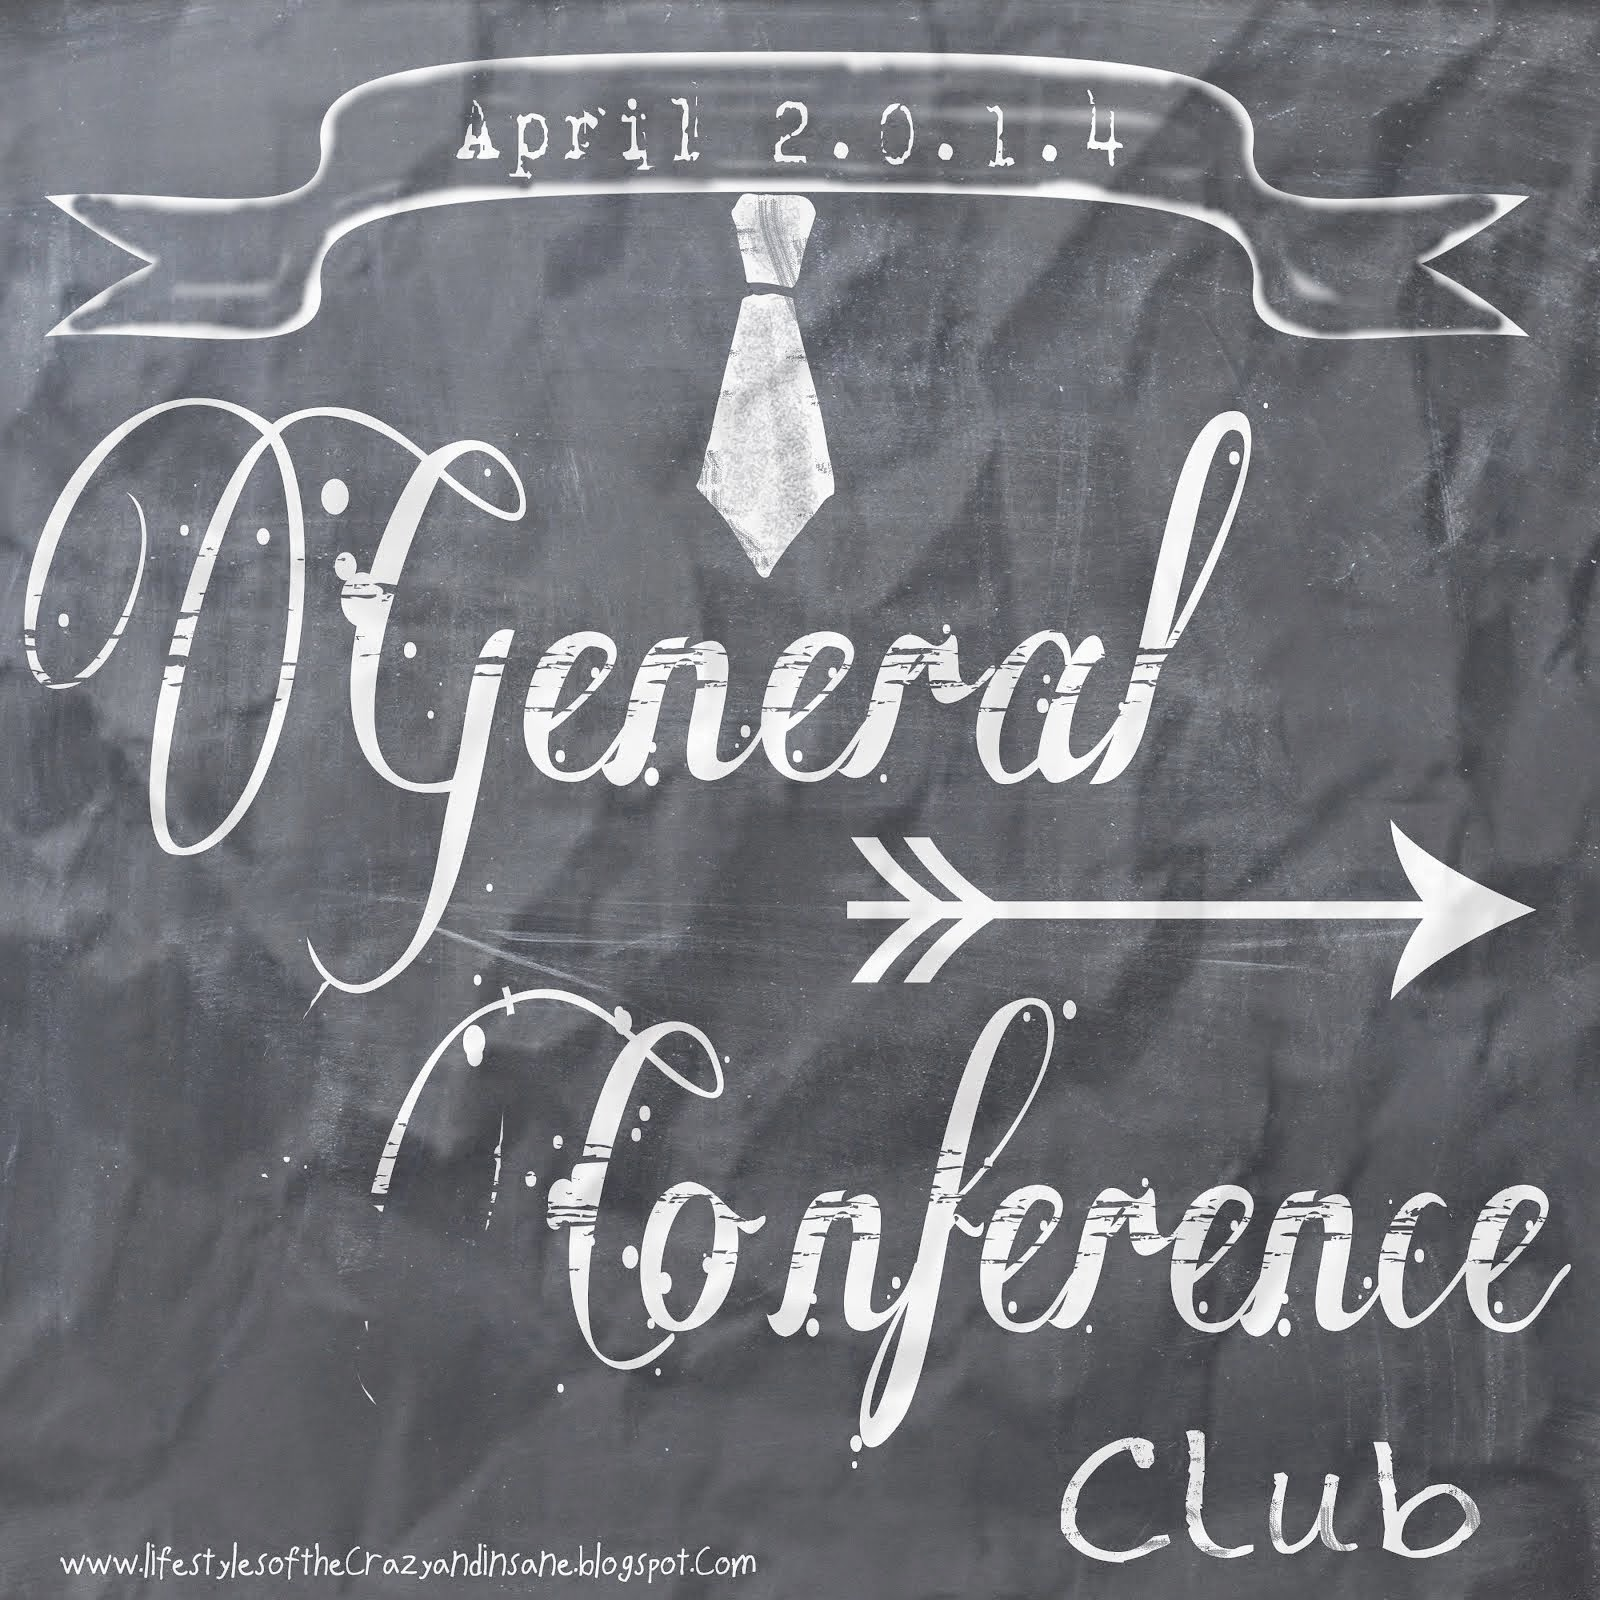 General Conference Club